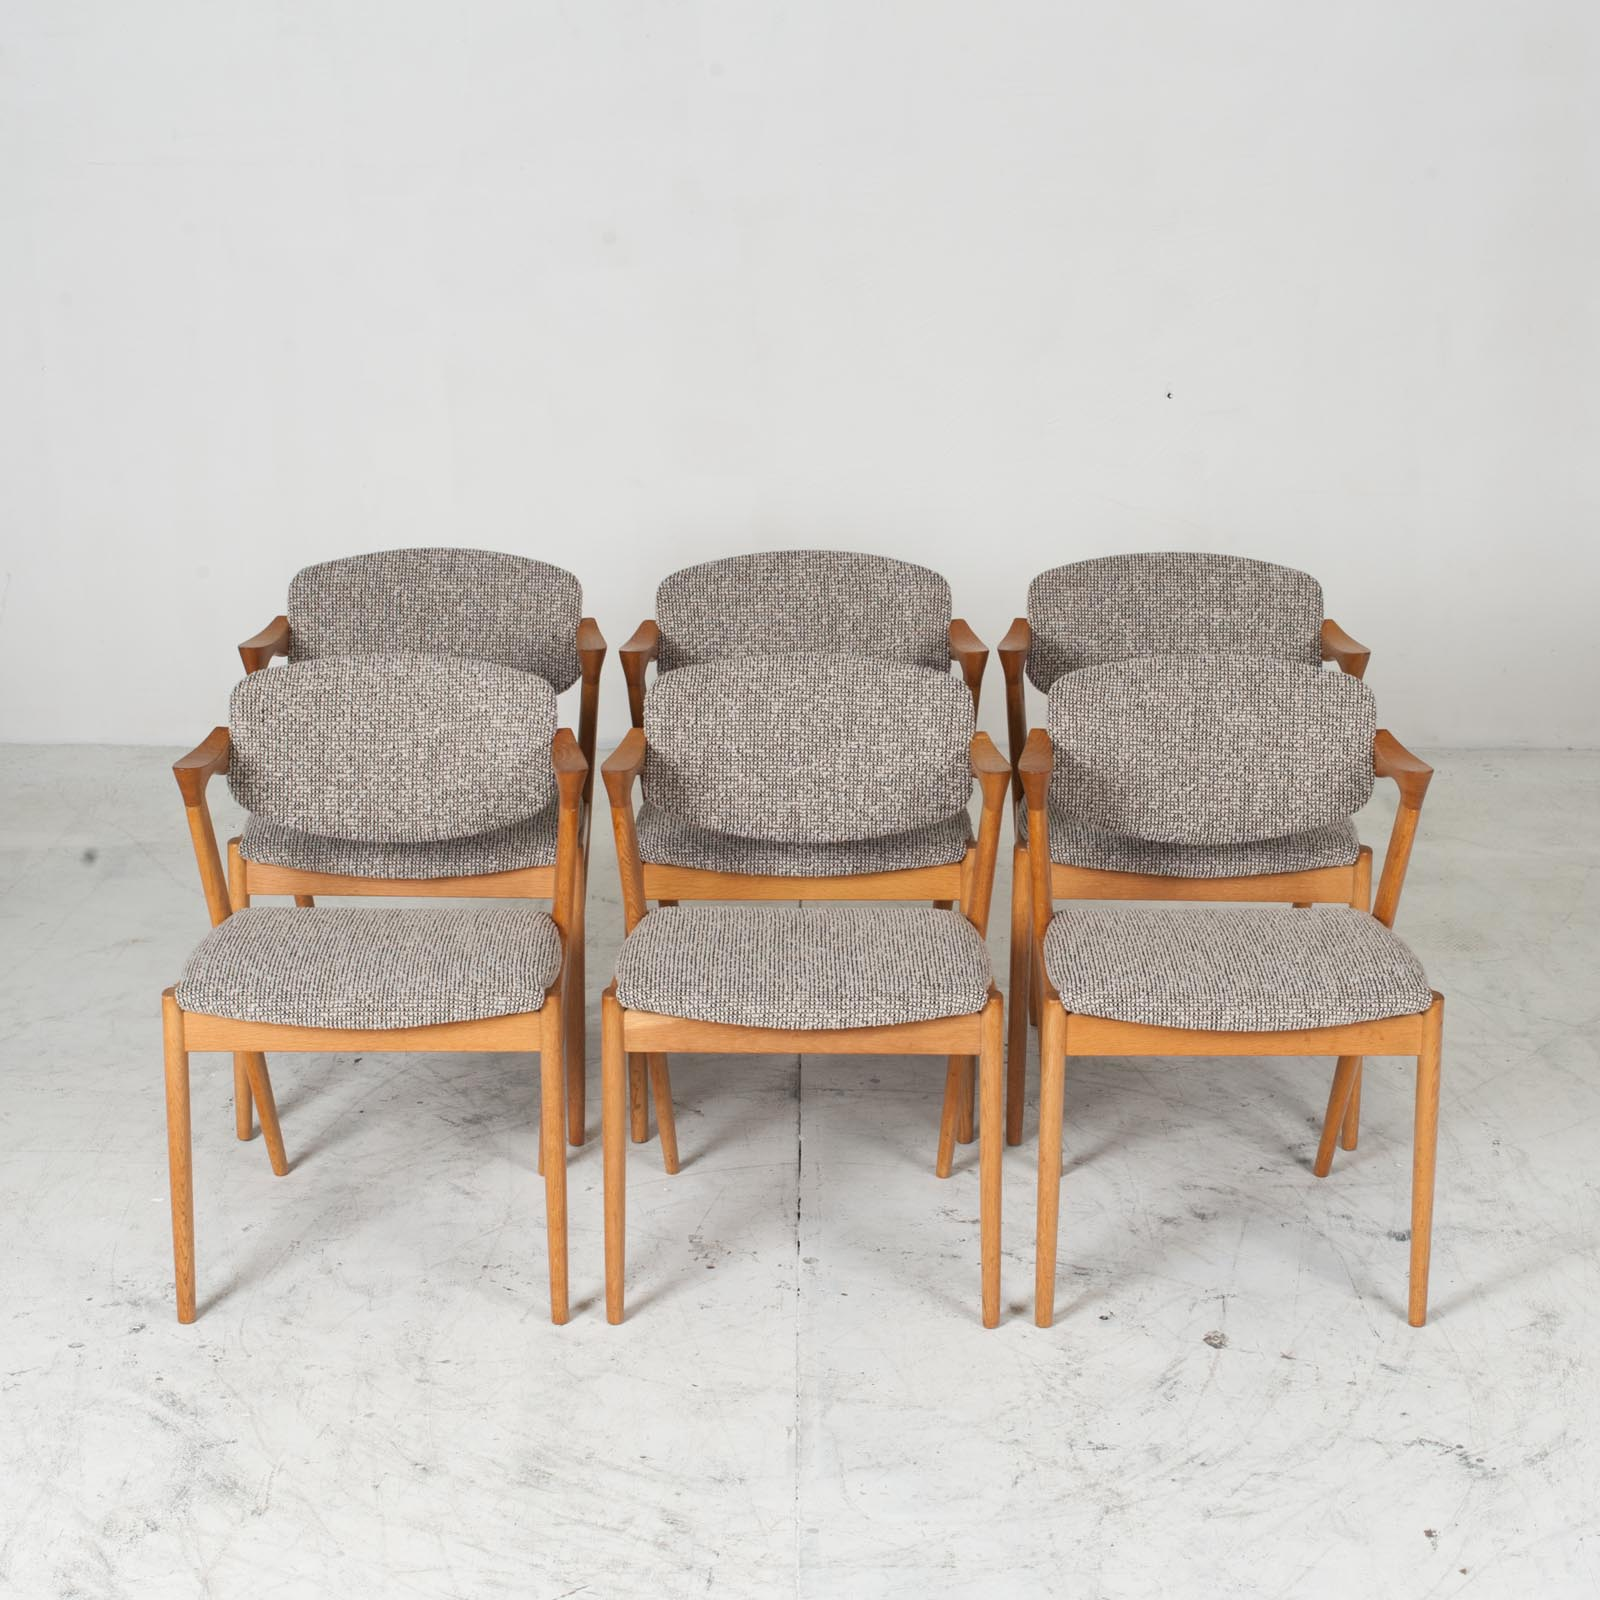 Set 6 No. 42 Dining Chairs By Kai Kristiansen In Oak 1960s Denmark 012